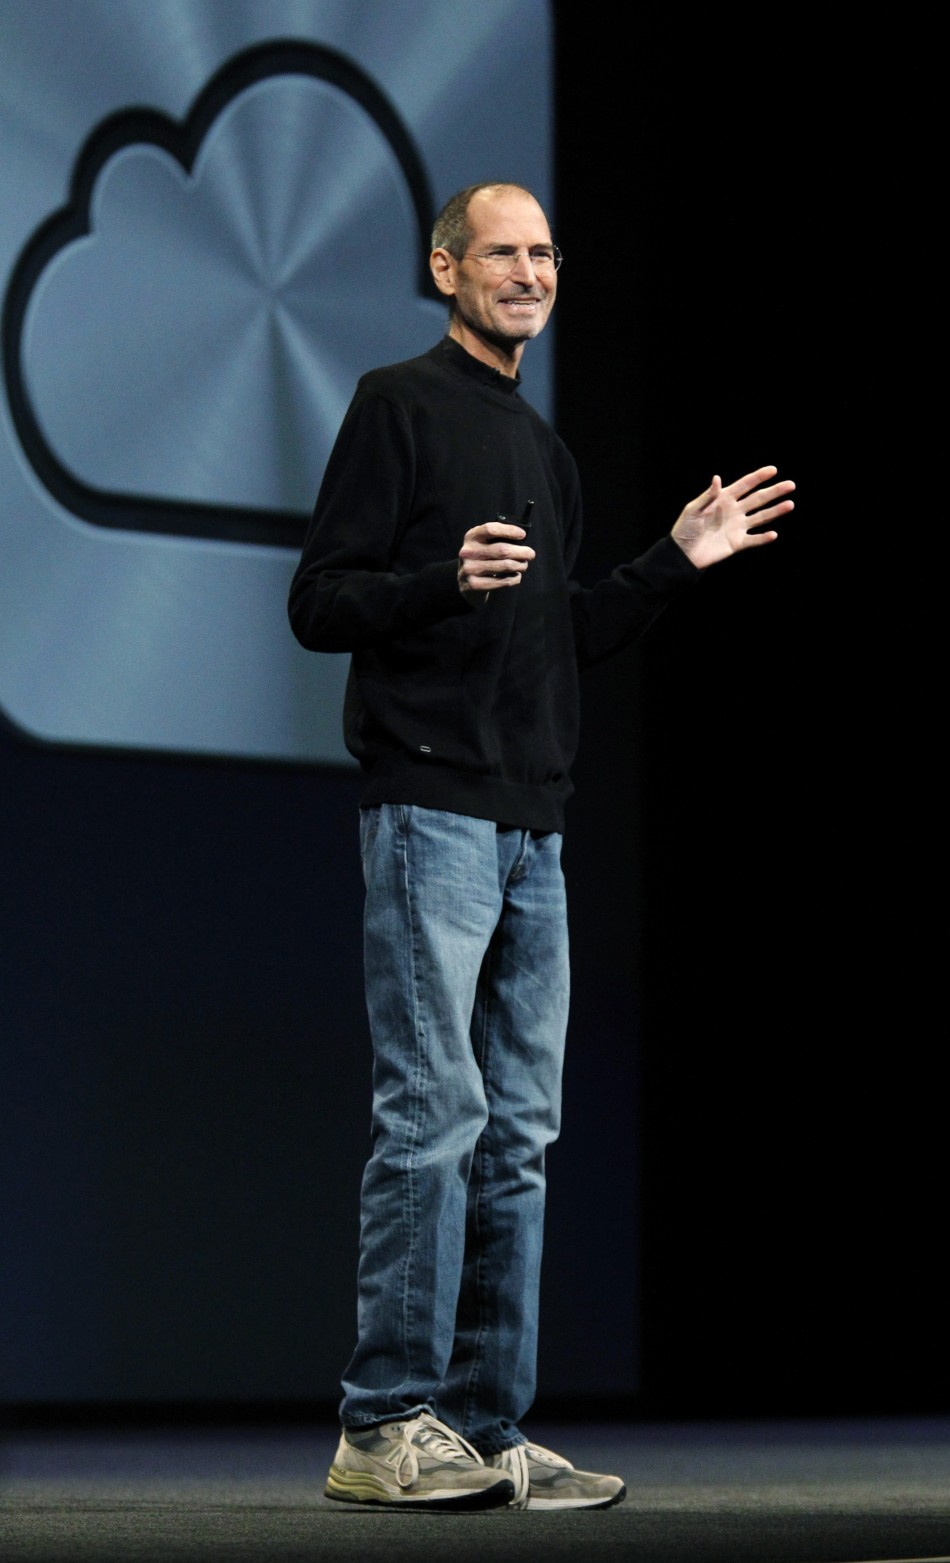 Does Steve Jobs' Death Sound the Death Knell for Apple?